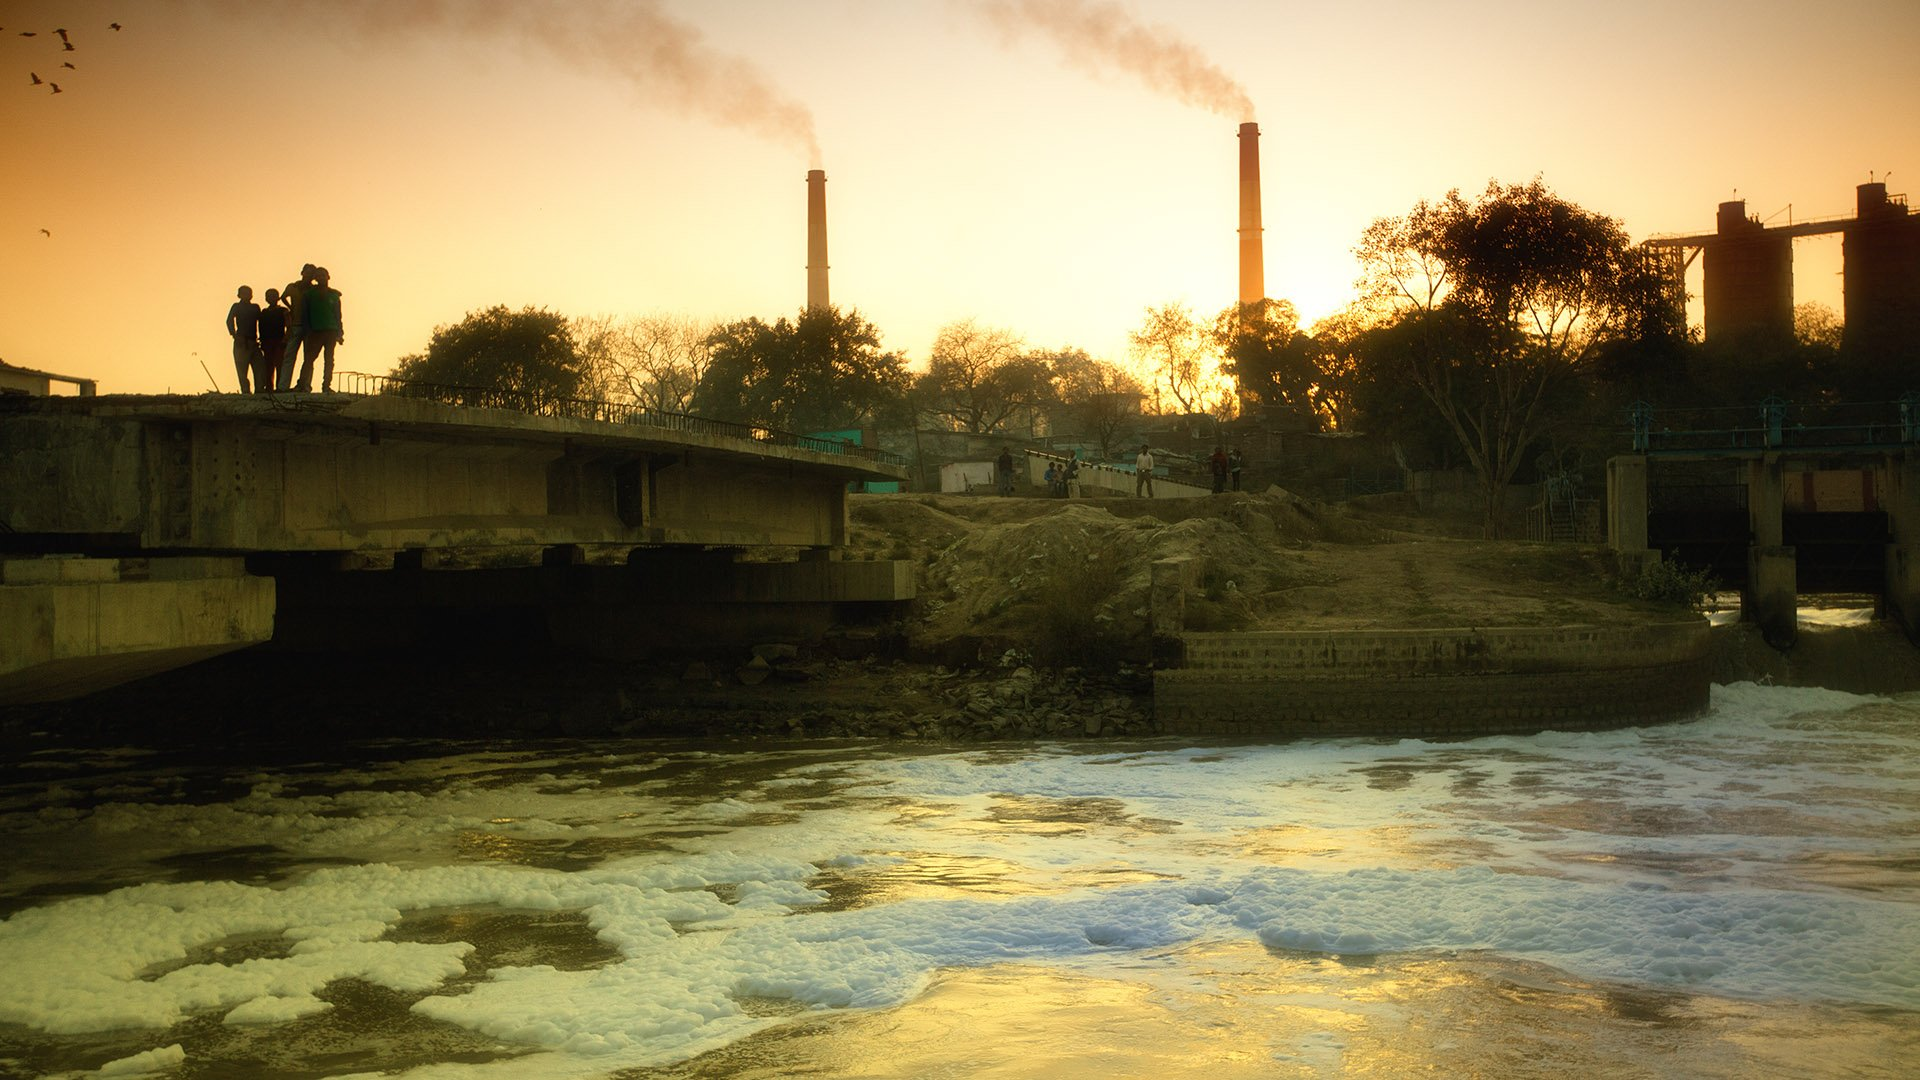 https://spatulamedia.ca/wp-content/uploads/2019/05/polluted-ganges-river.jpg